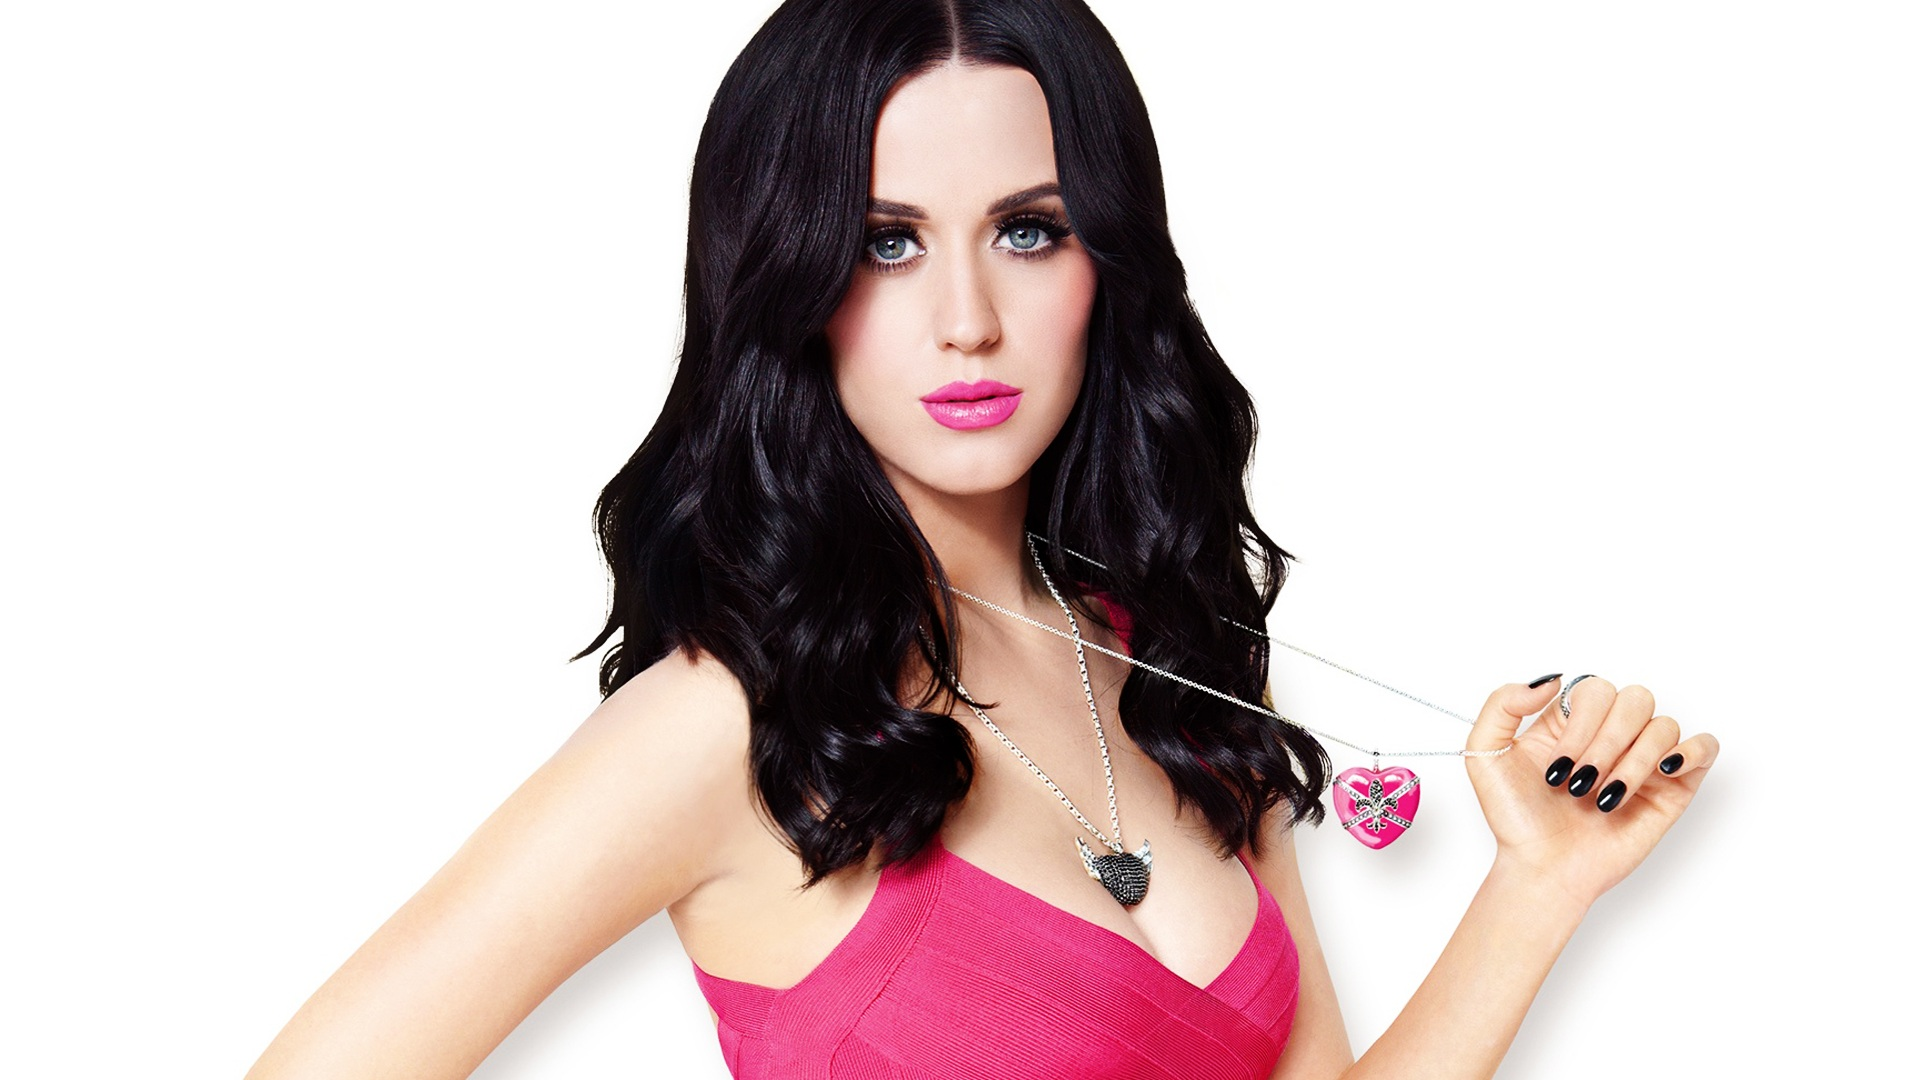 Beautiful Katy Perry Wallpapers